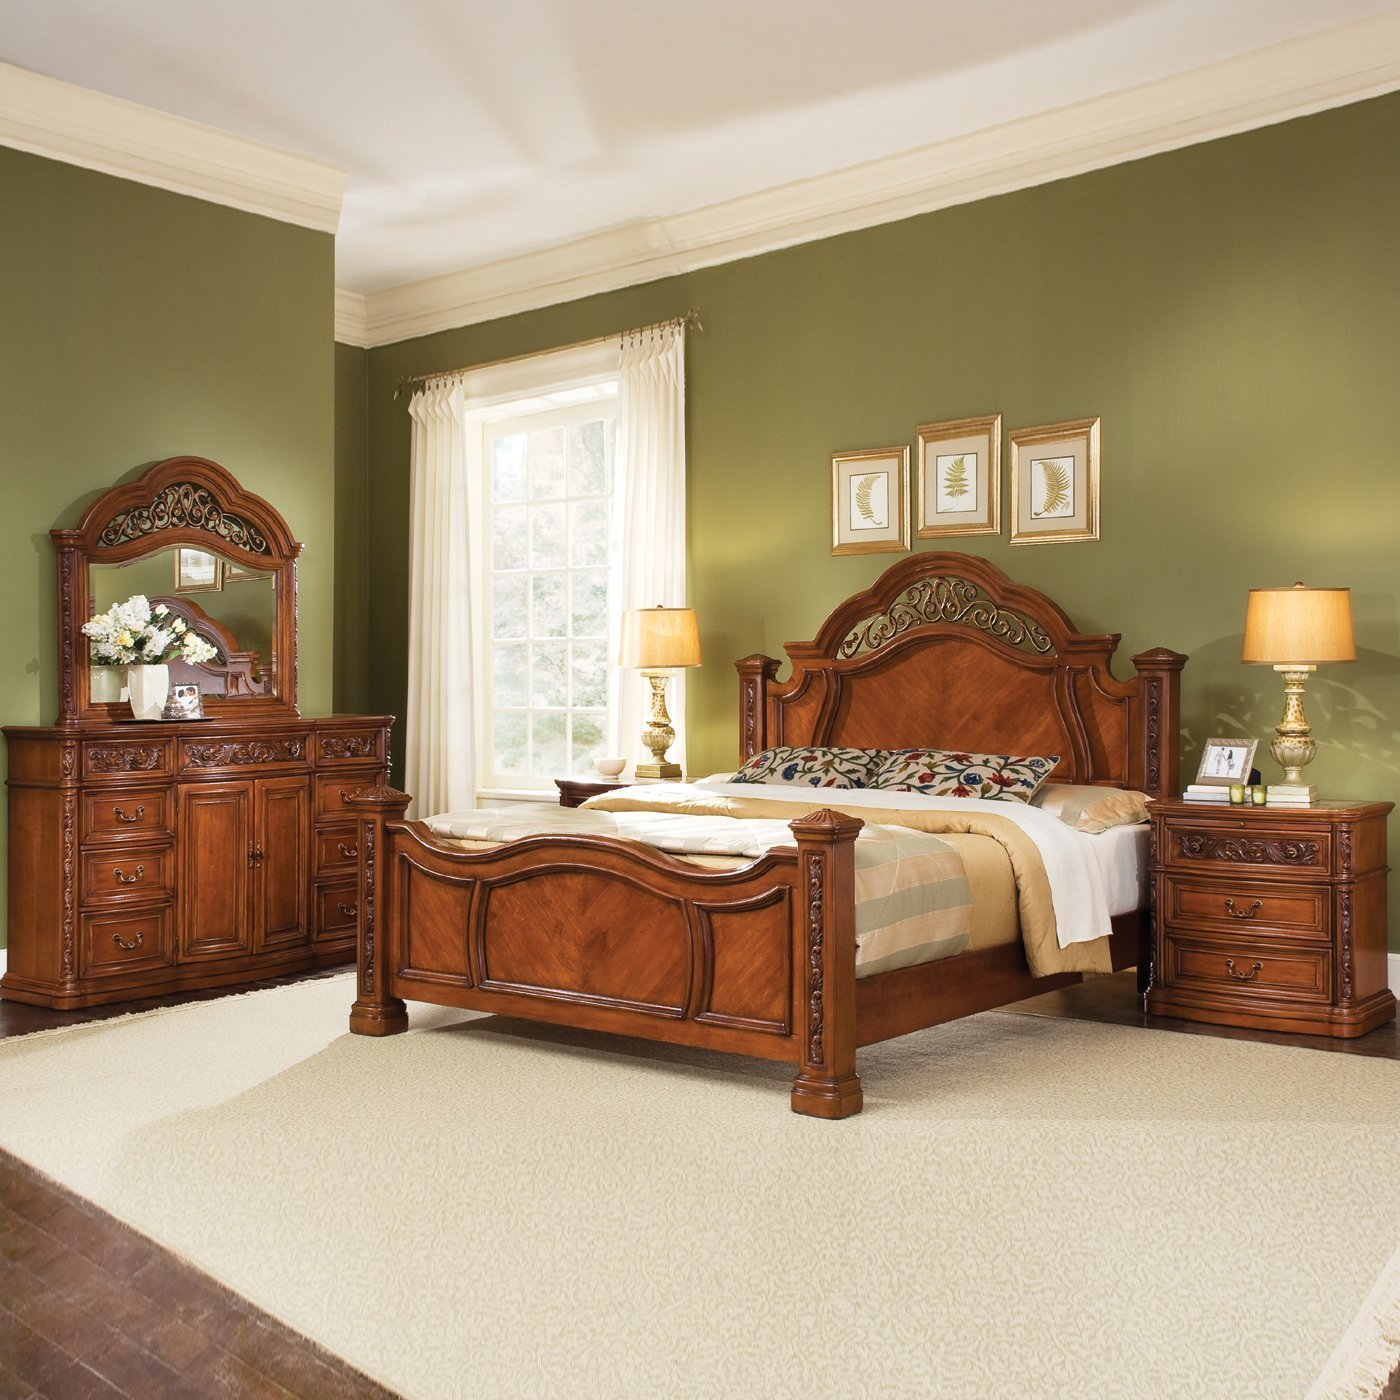 Best Nice King Bedroom Sets House Design Design Your Own King With Pictures